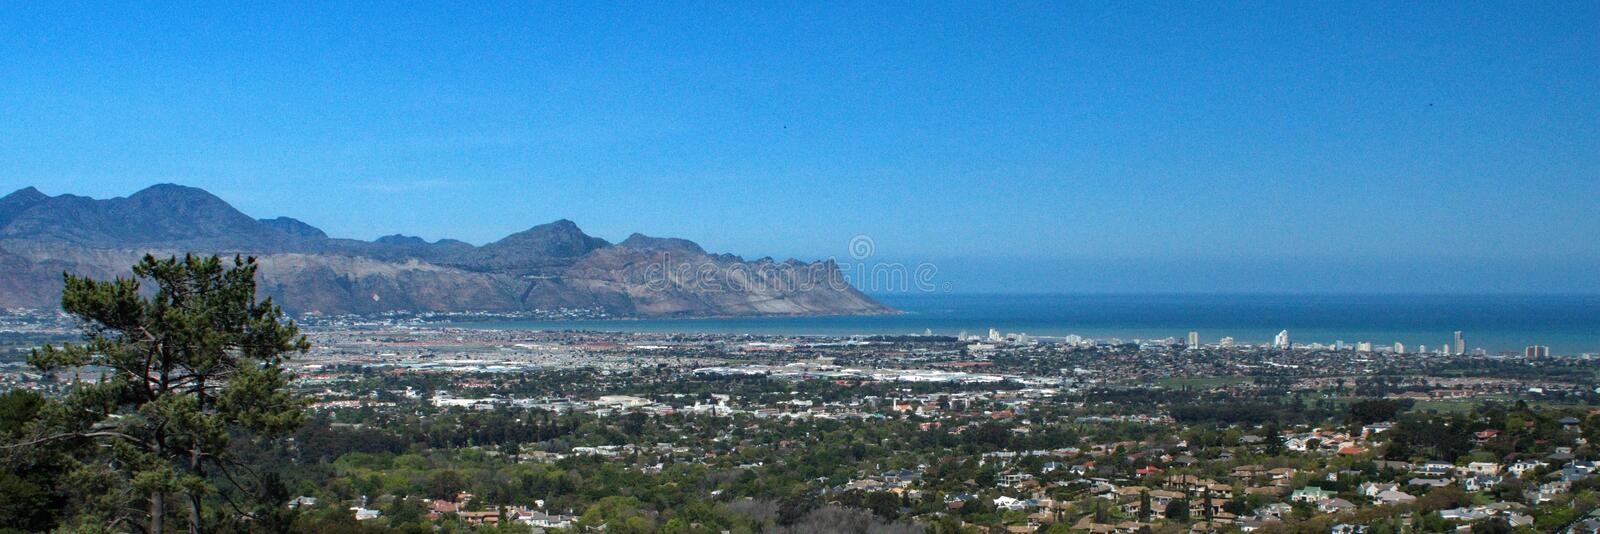 Panoramic of Strand, South Africa stock photography